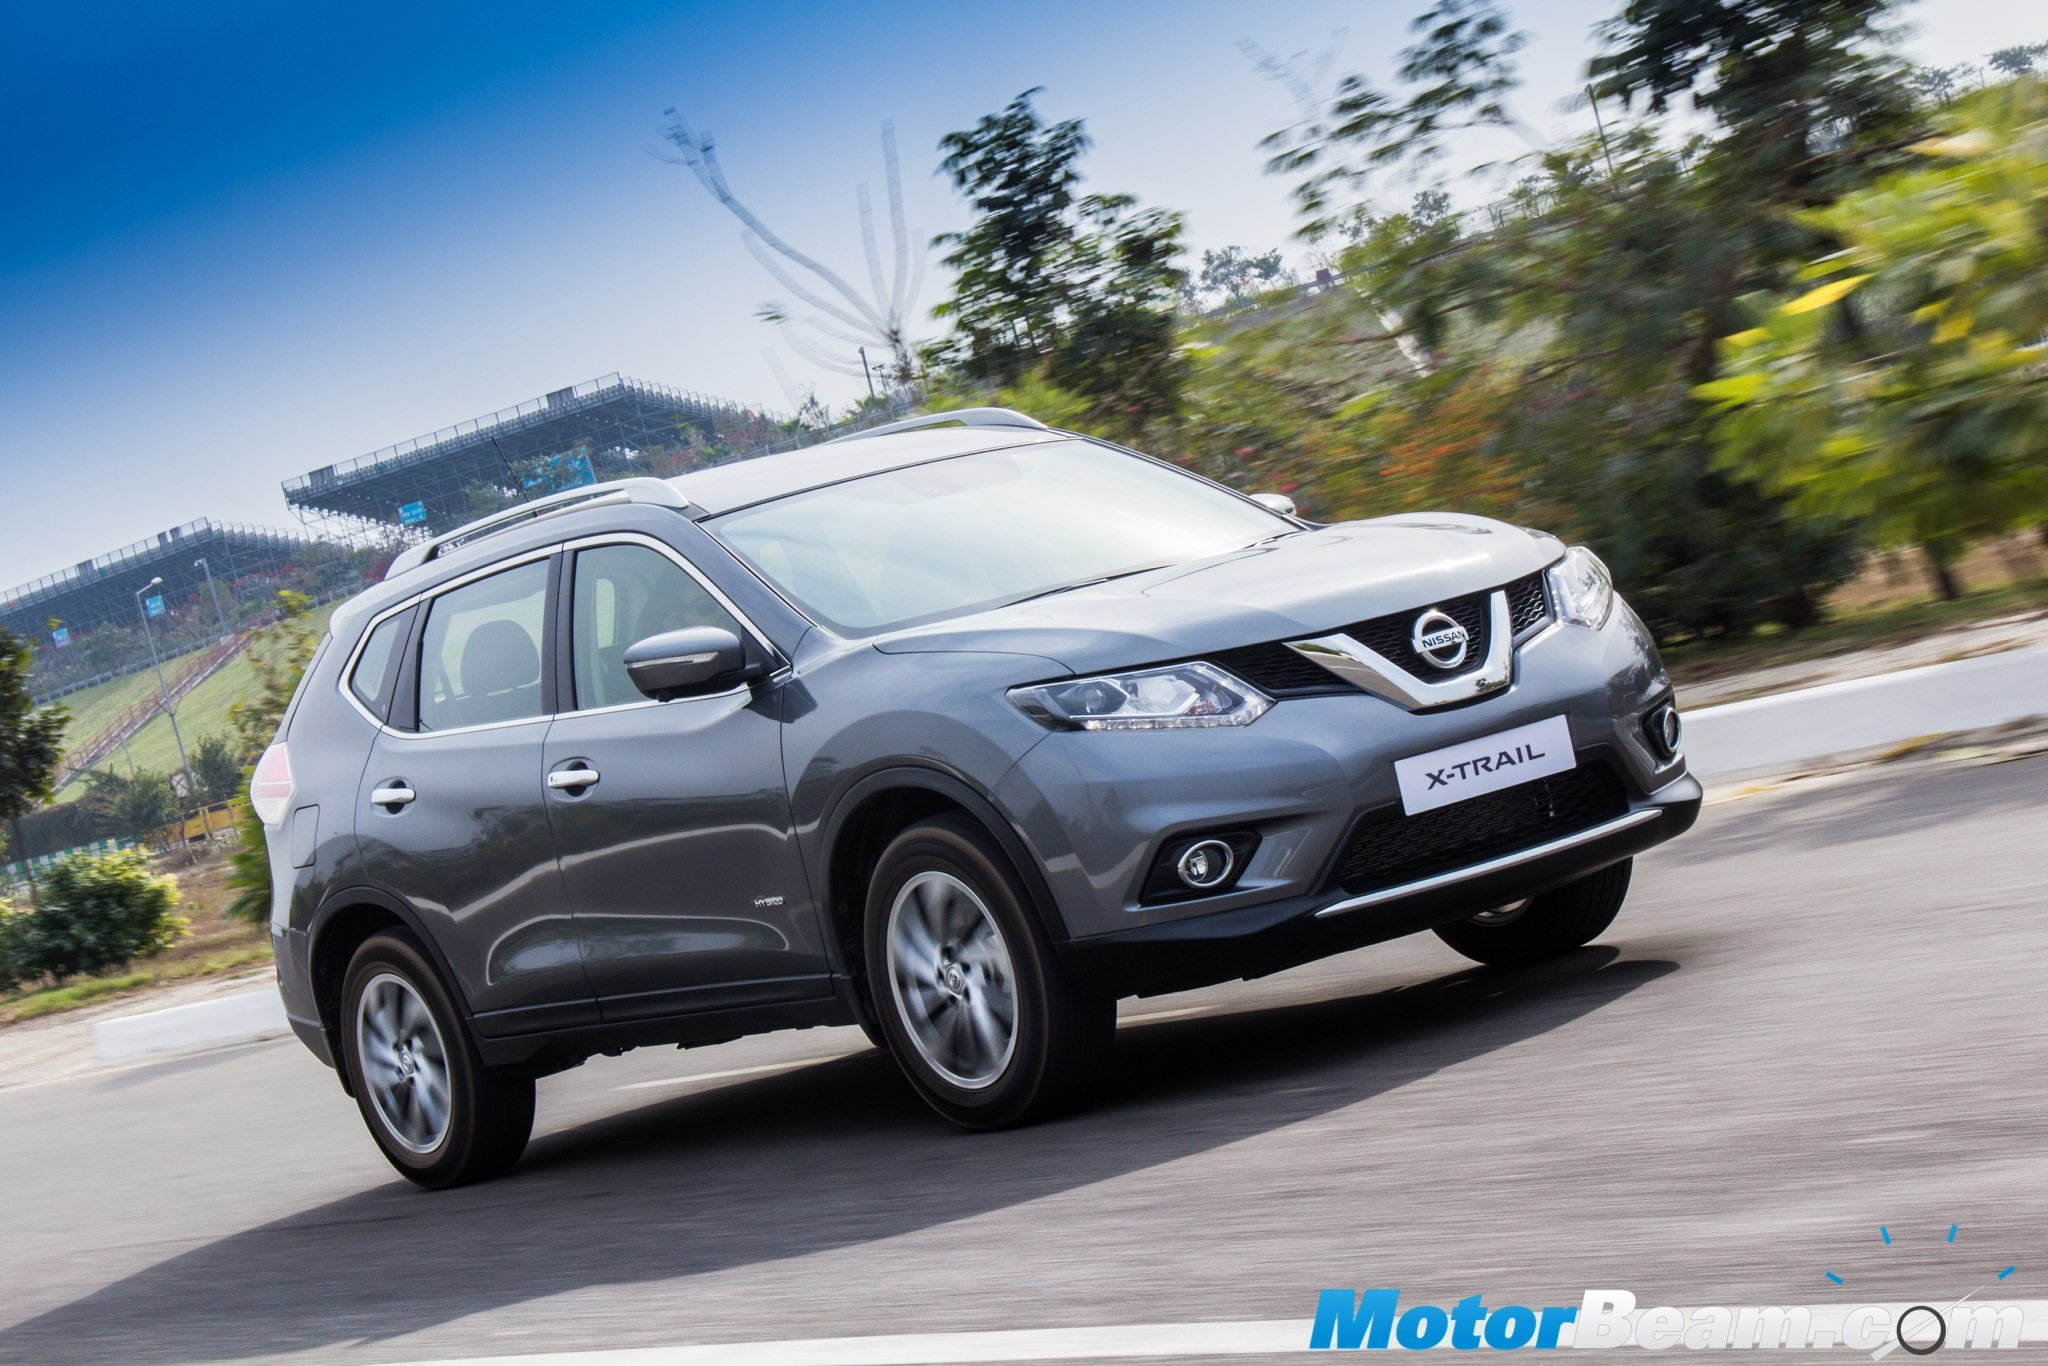 2016 Nissan X-Trail Hybrid Performance